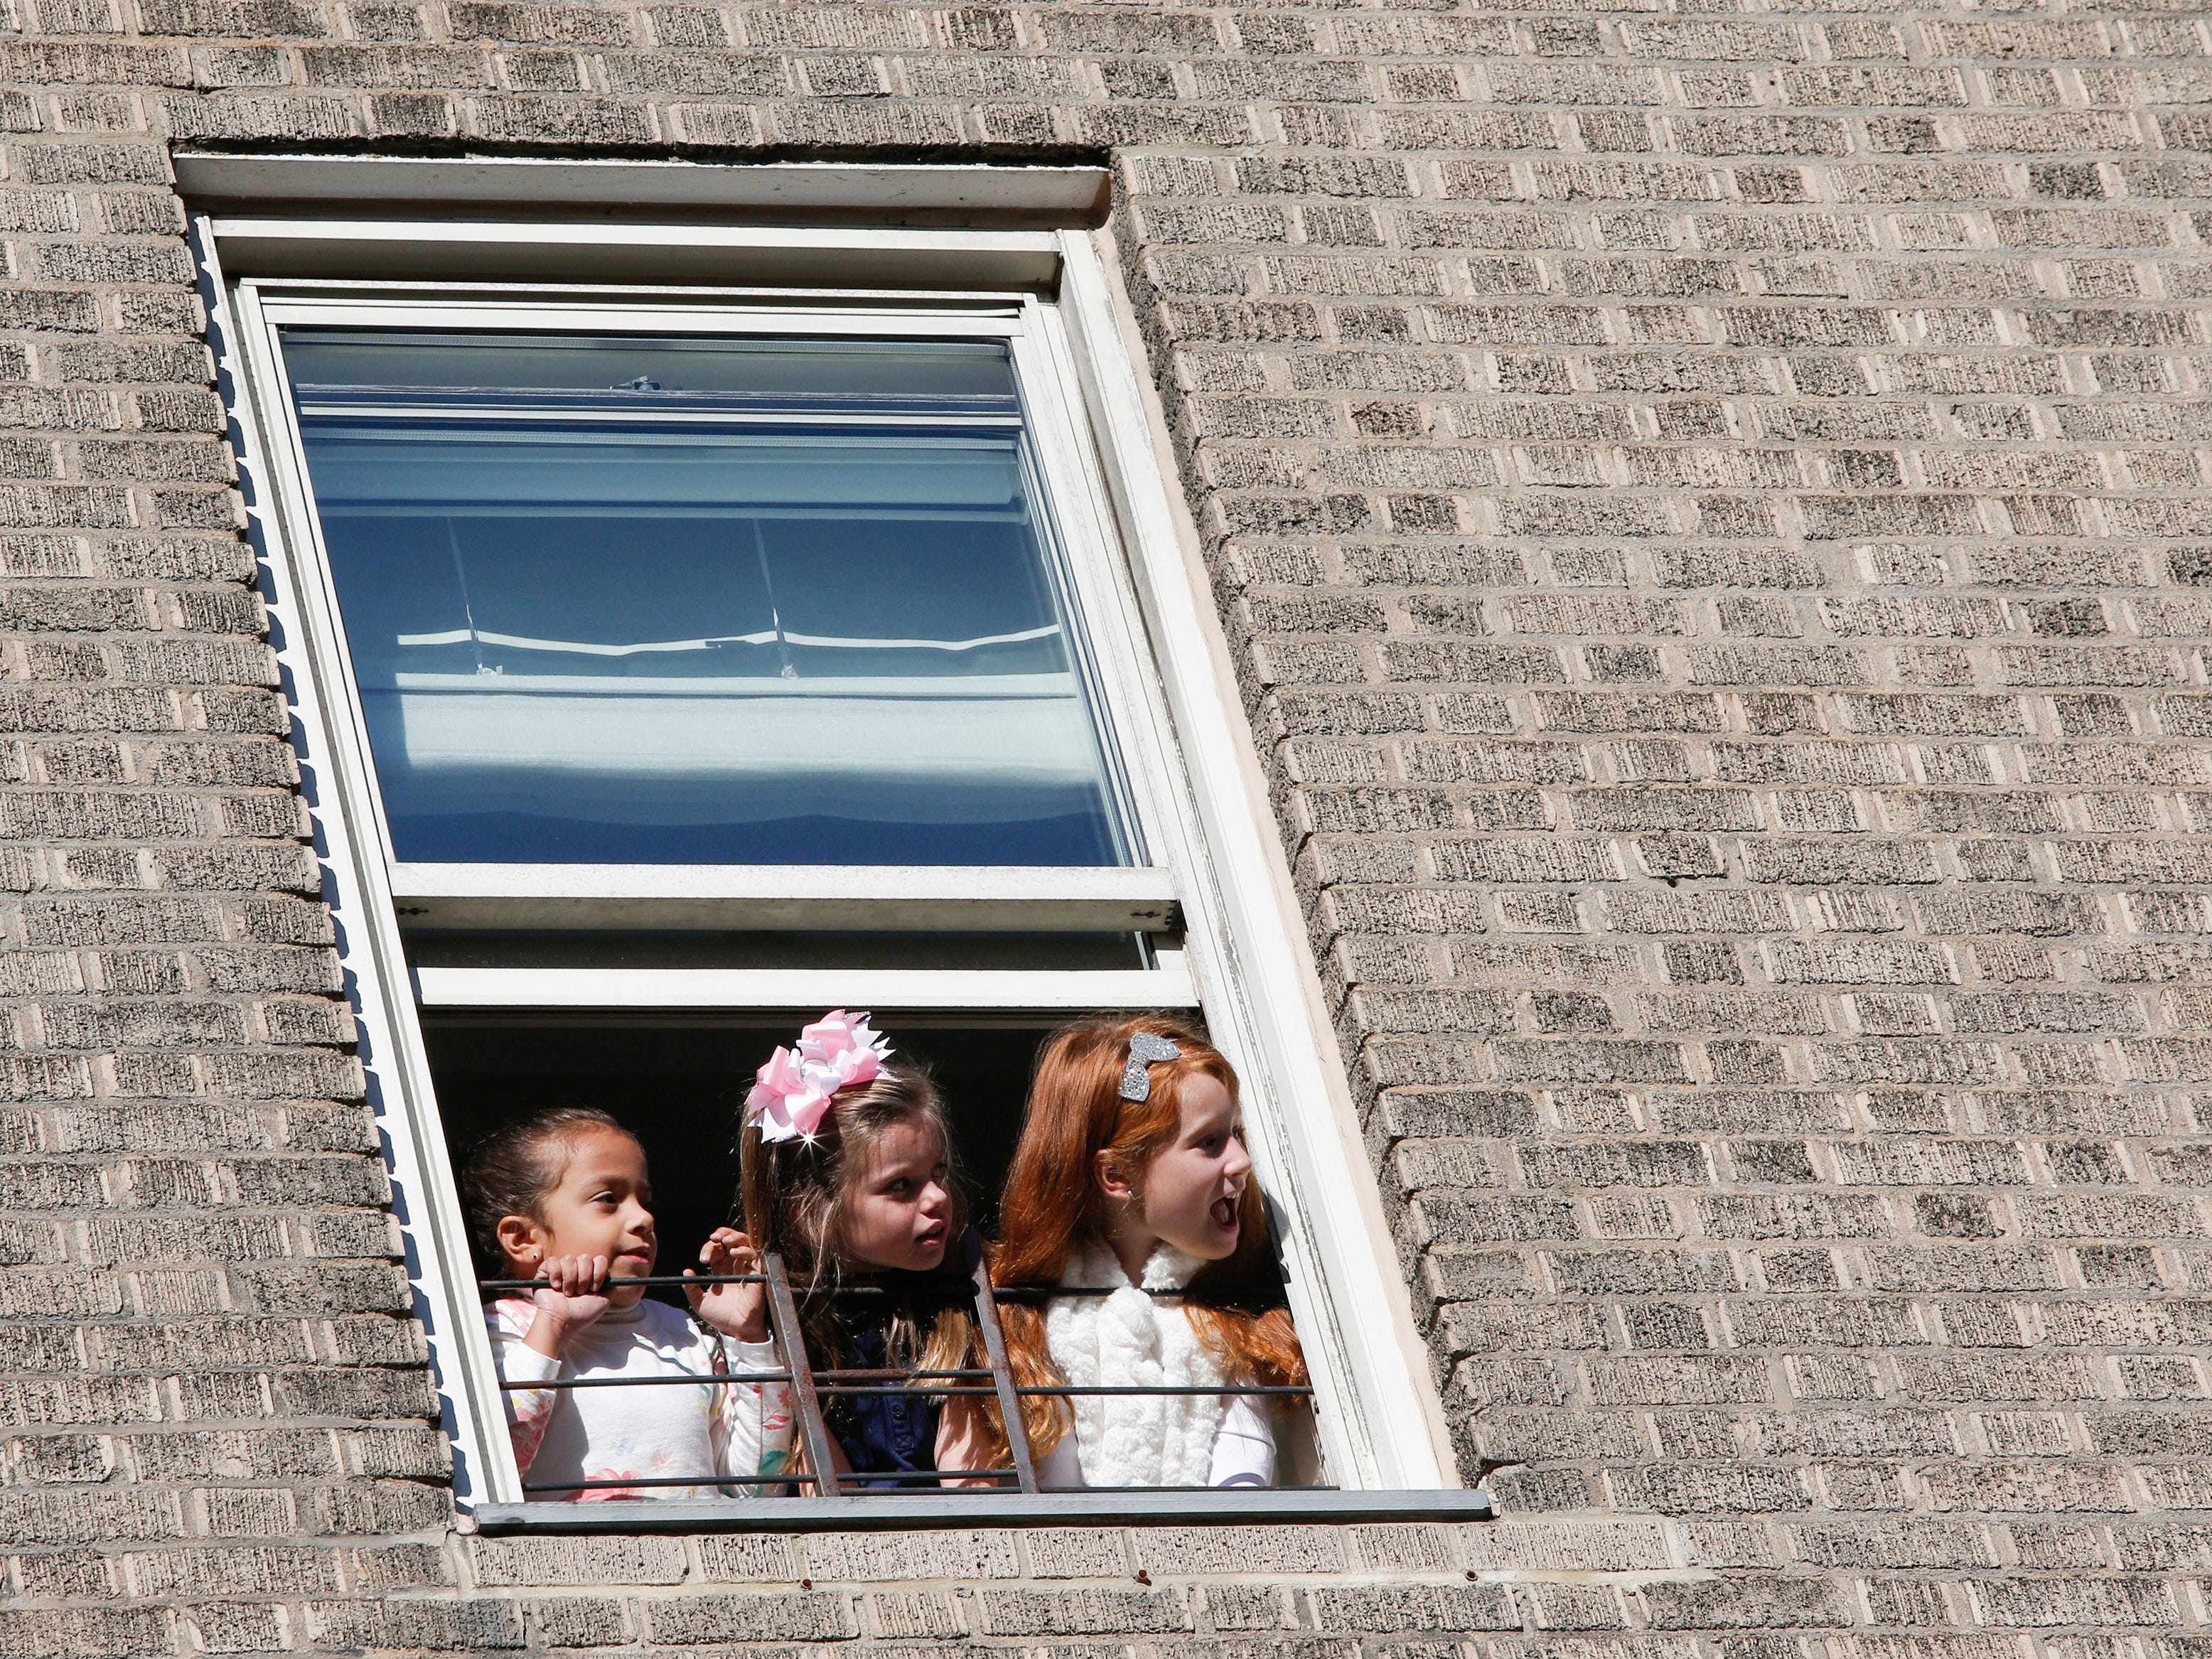 Children look at balloons from a window during the 92nd annual Macy's Thanksgiving Day Parade in New York, Thursday, Nov. 22, 2018.